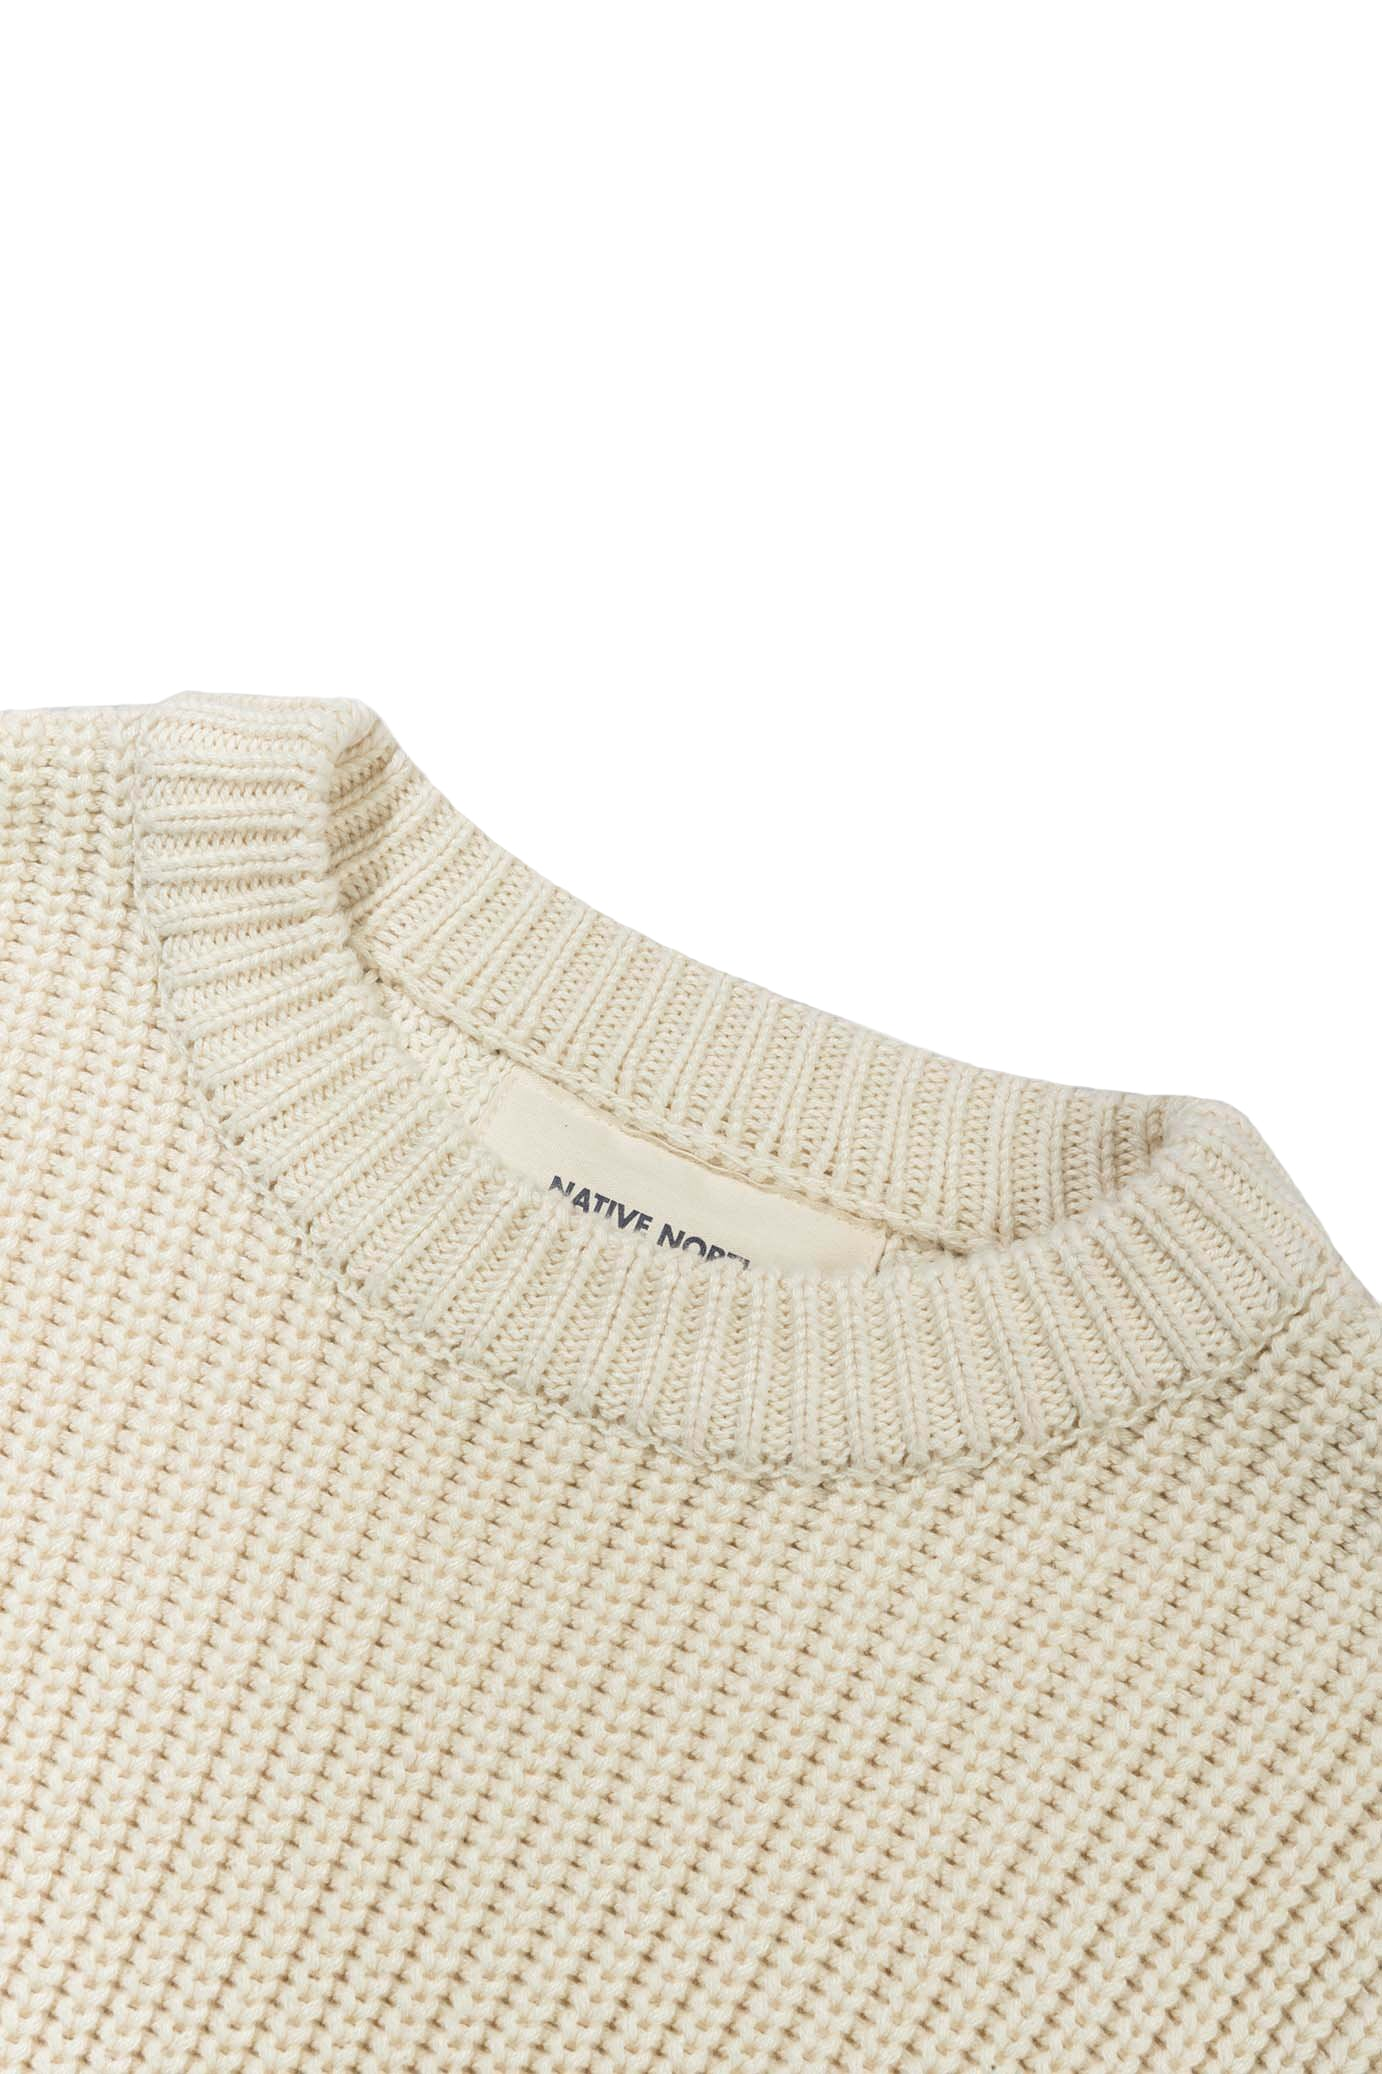 ASKER WOOL KNIT - OFF WHITE